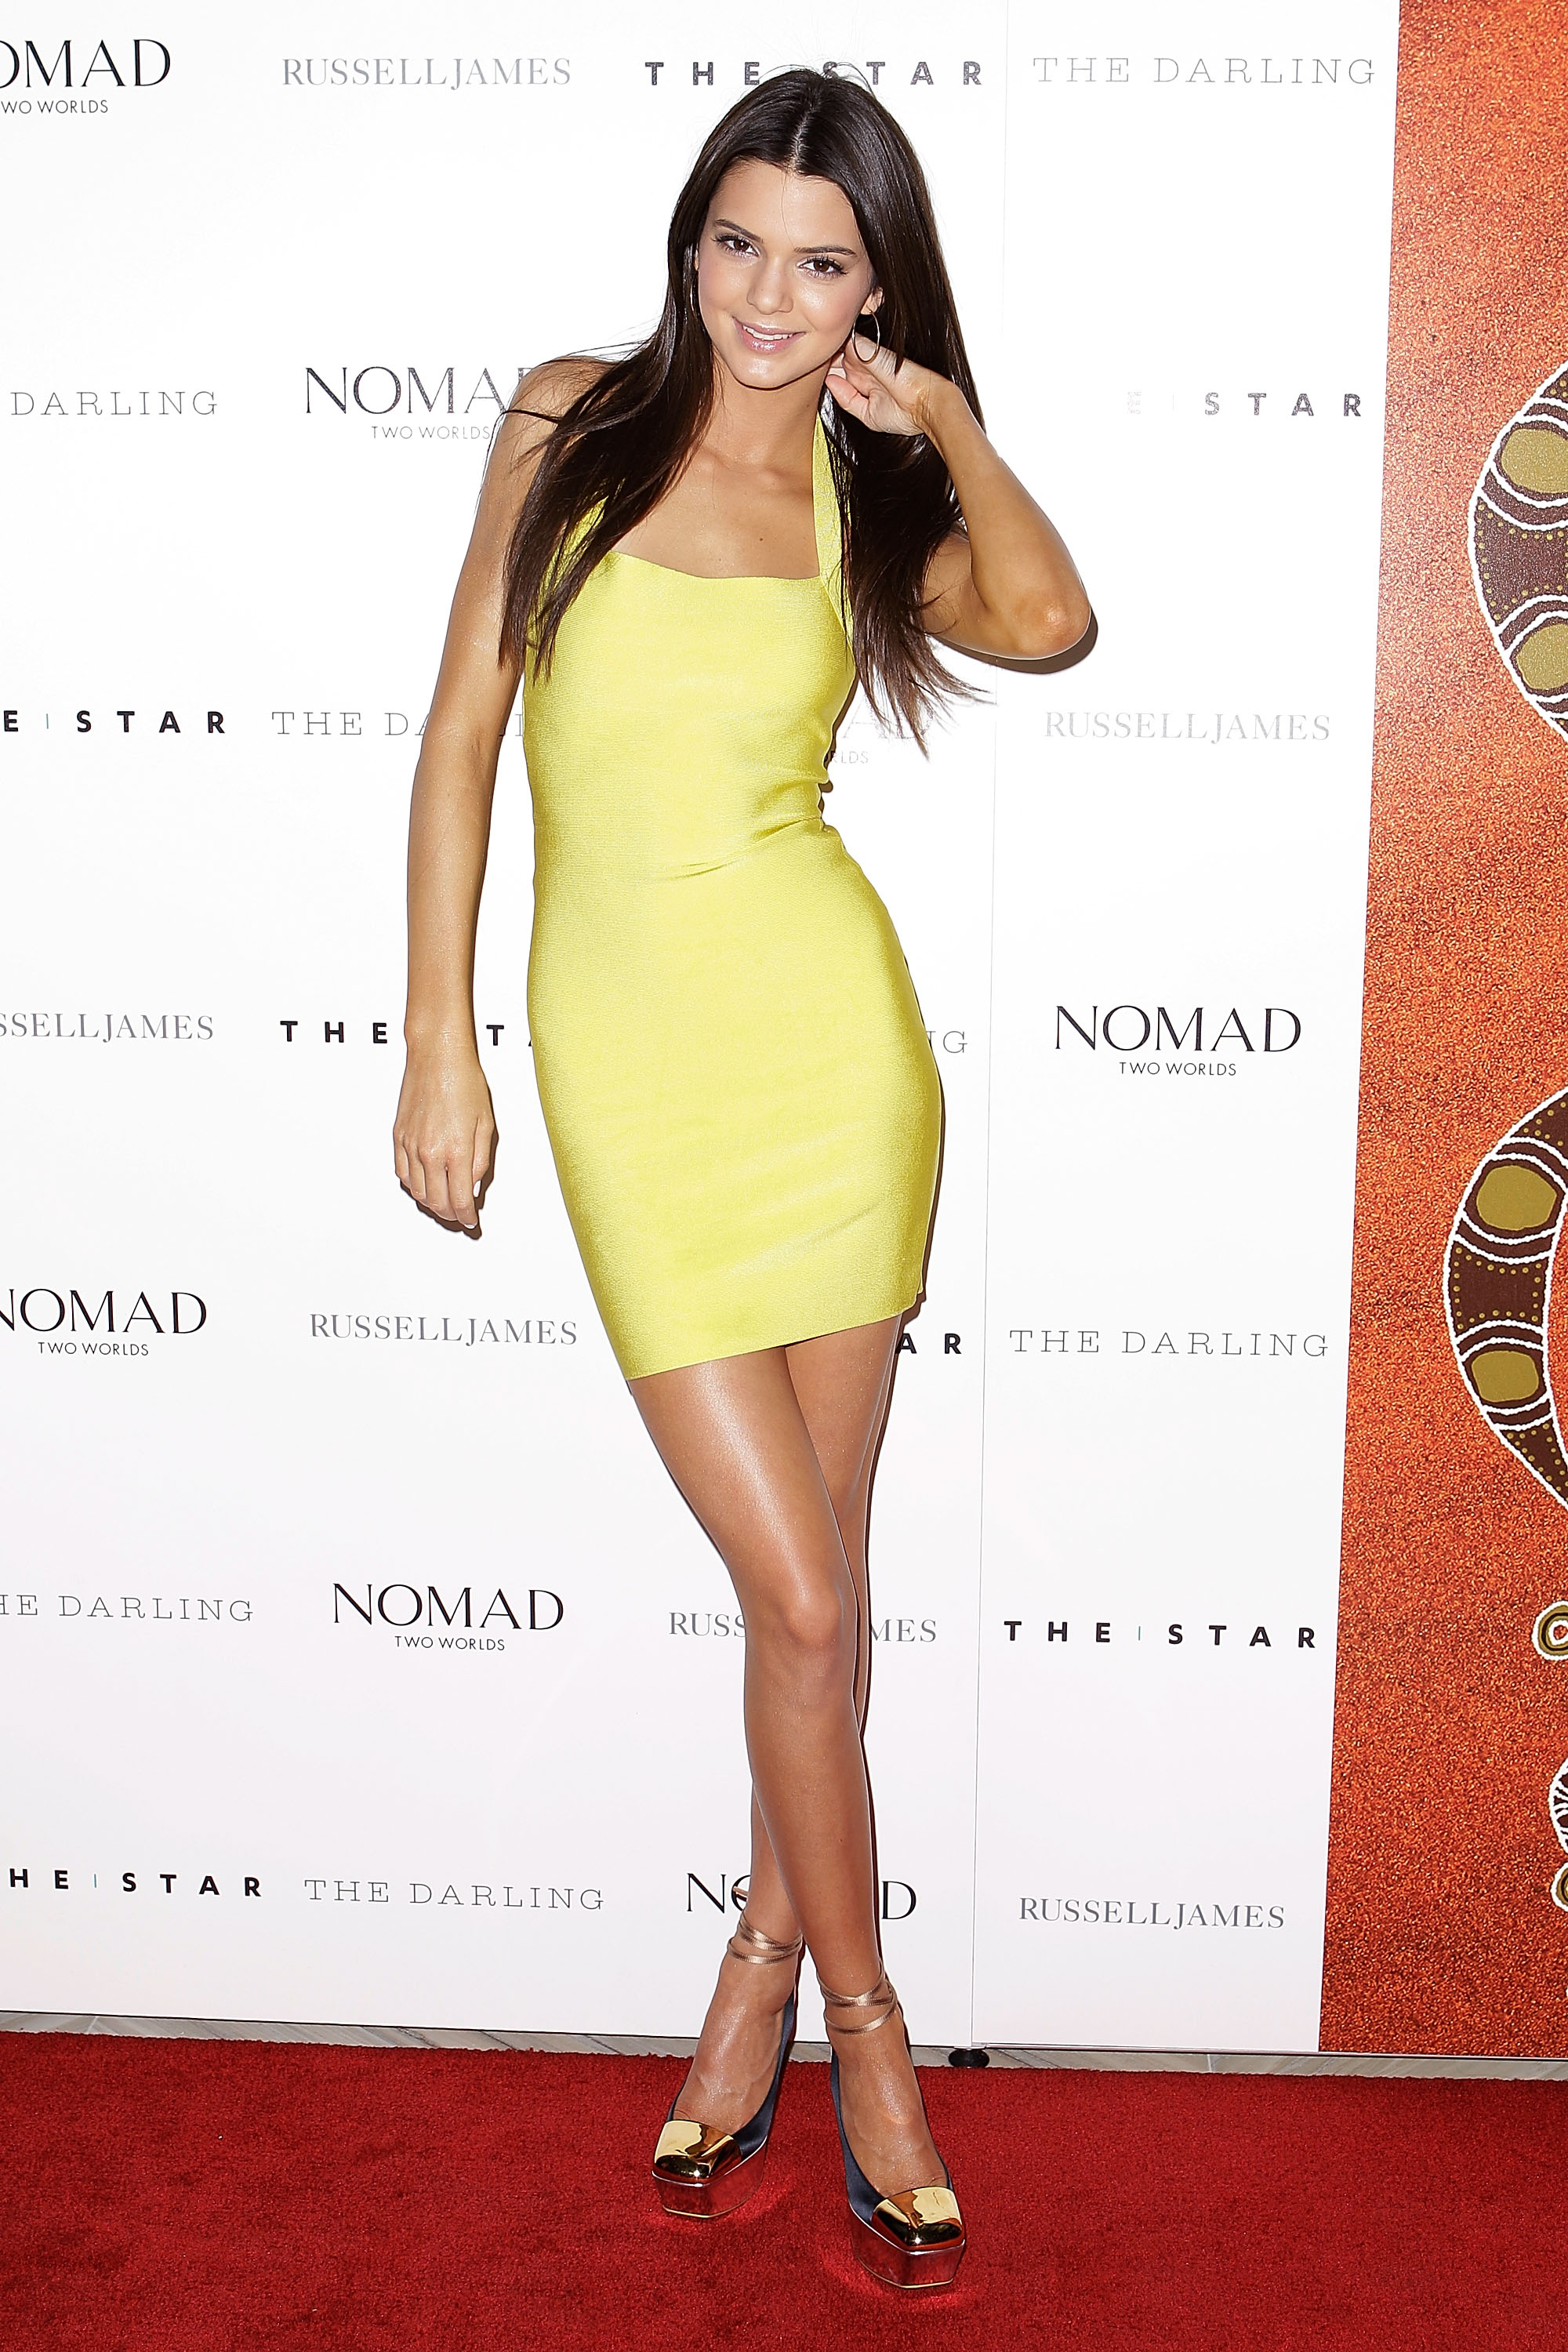 Kendall Jenner - Nomad Two Worlds book launch in Sydney-05 ... Emma Watson Book